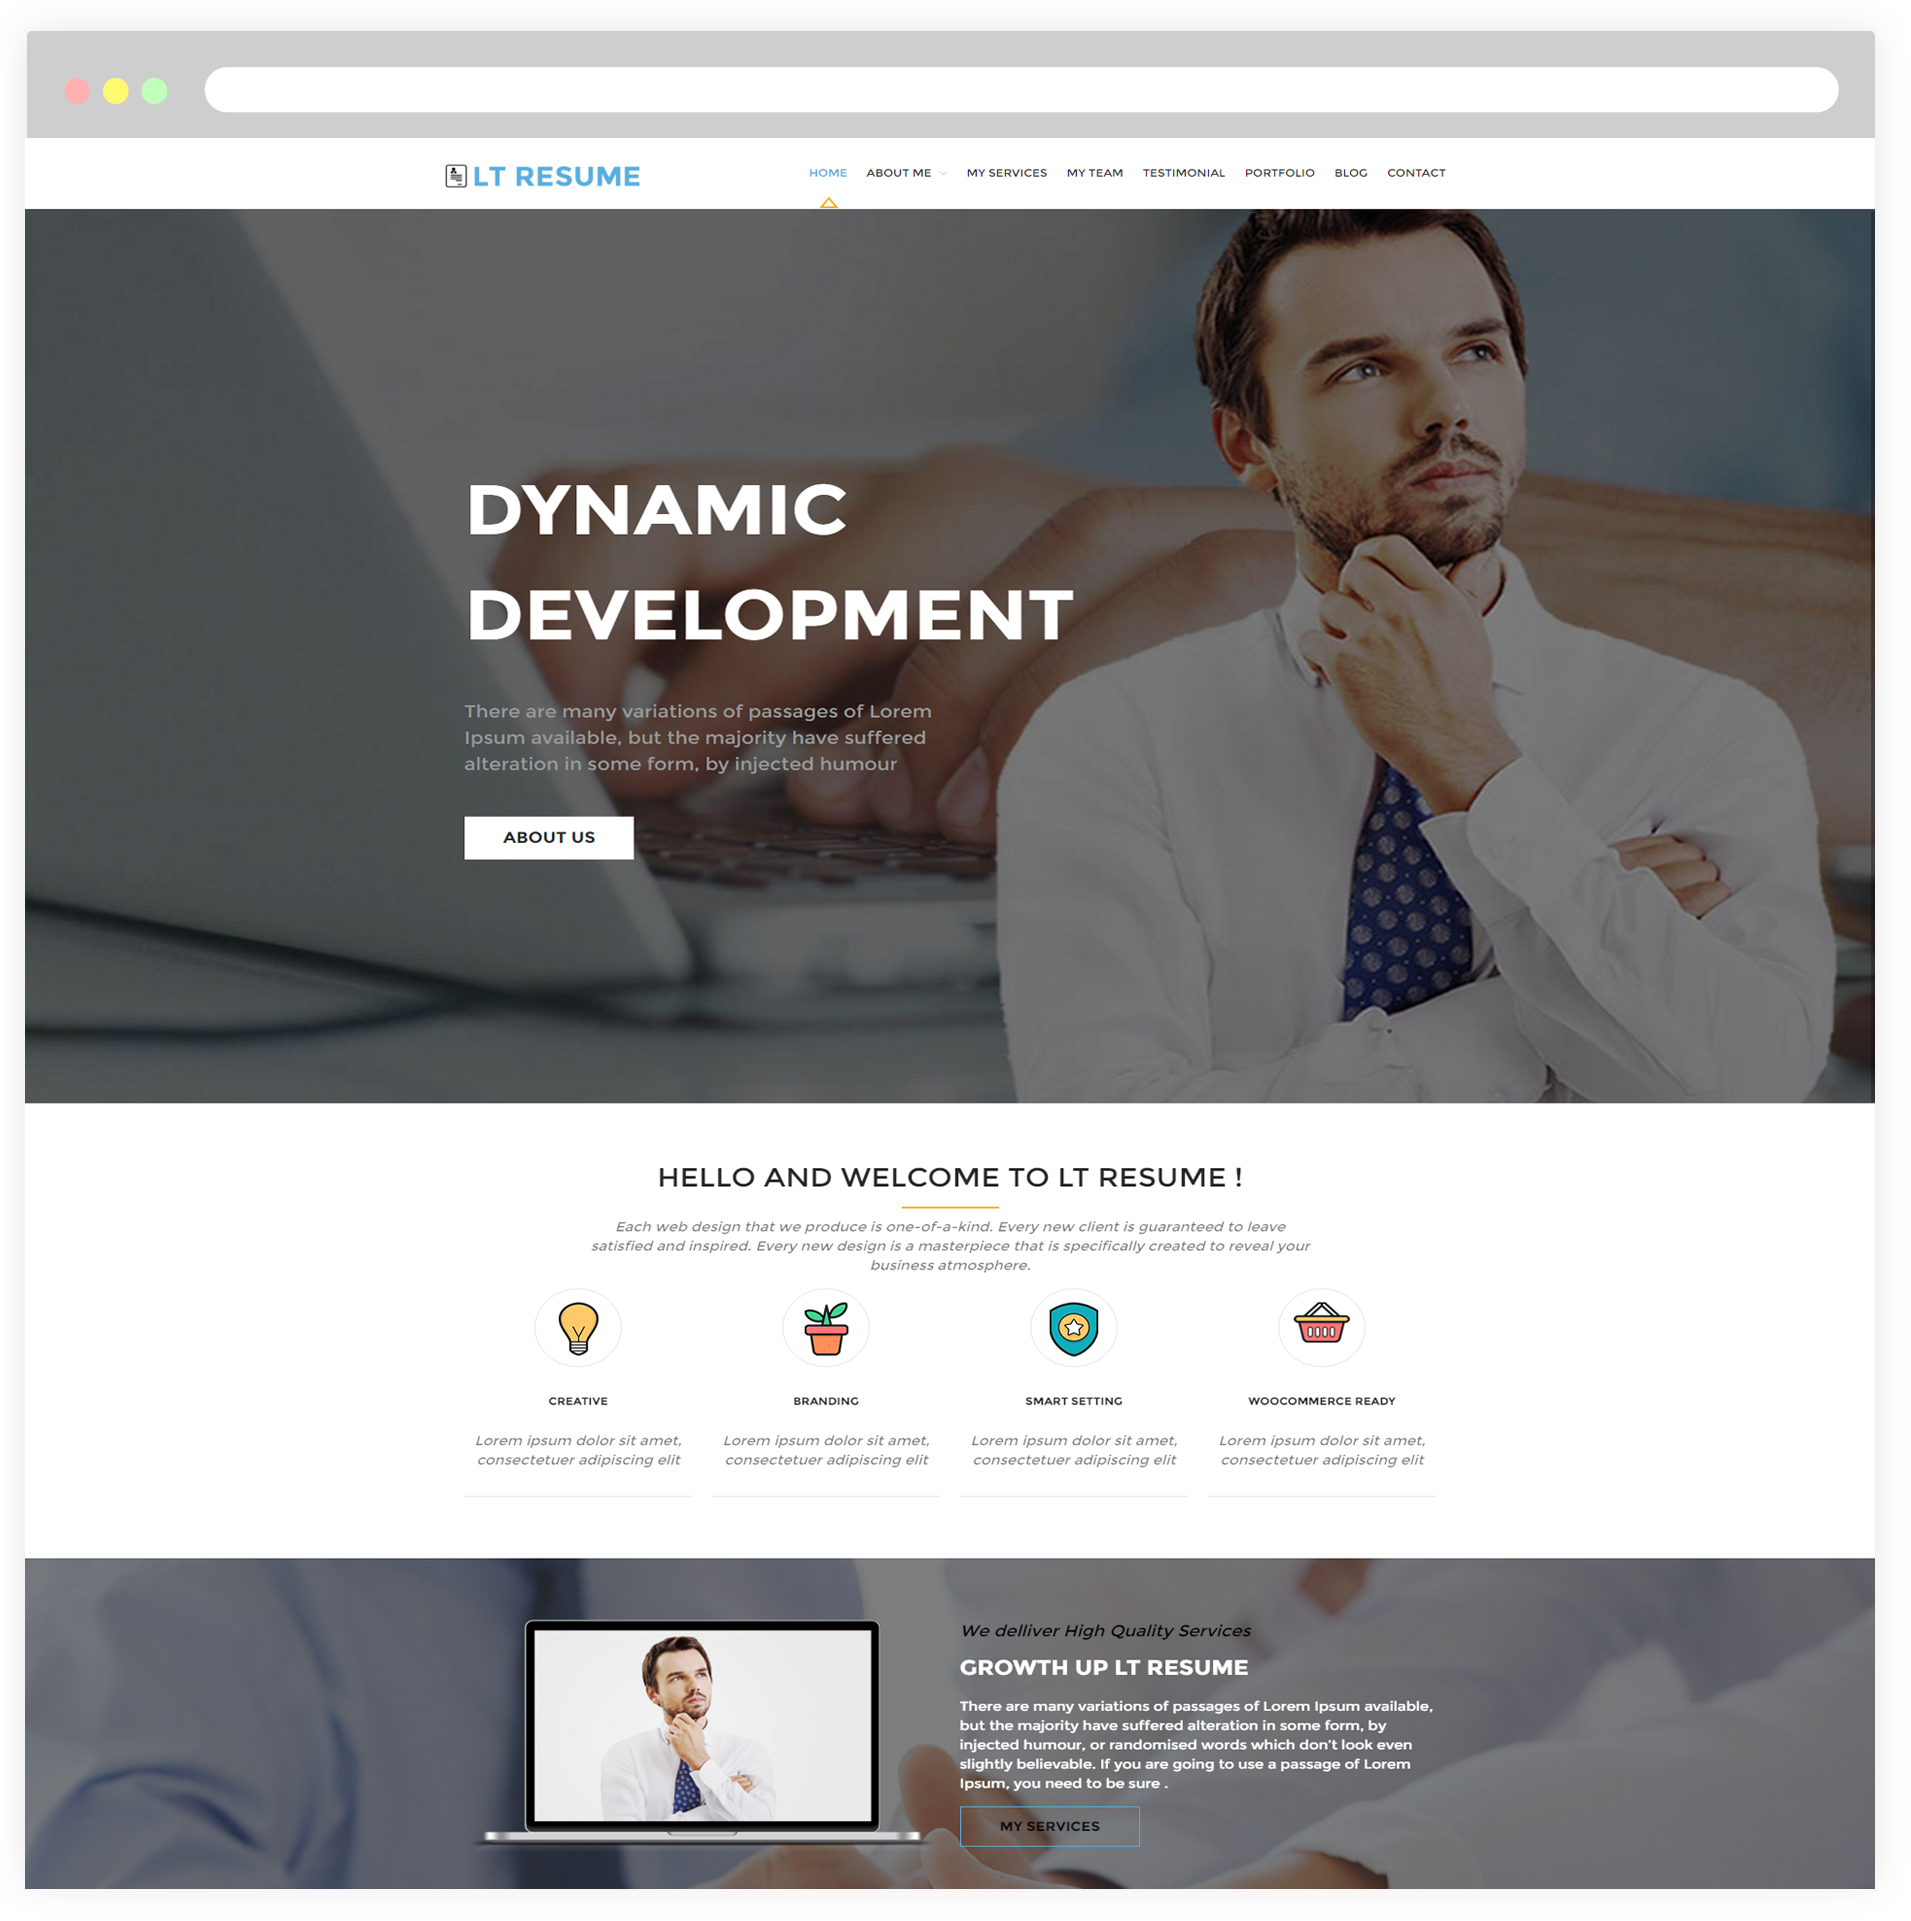 Lt resume free responsive personal cv wordpress resume theme home free wordpress theme yelopaper Images